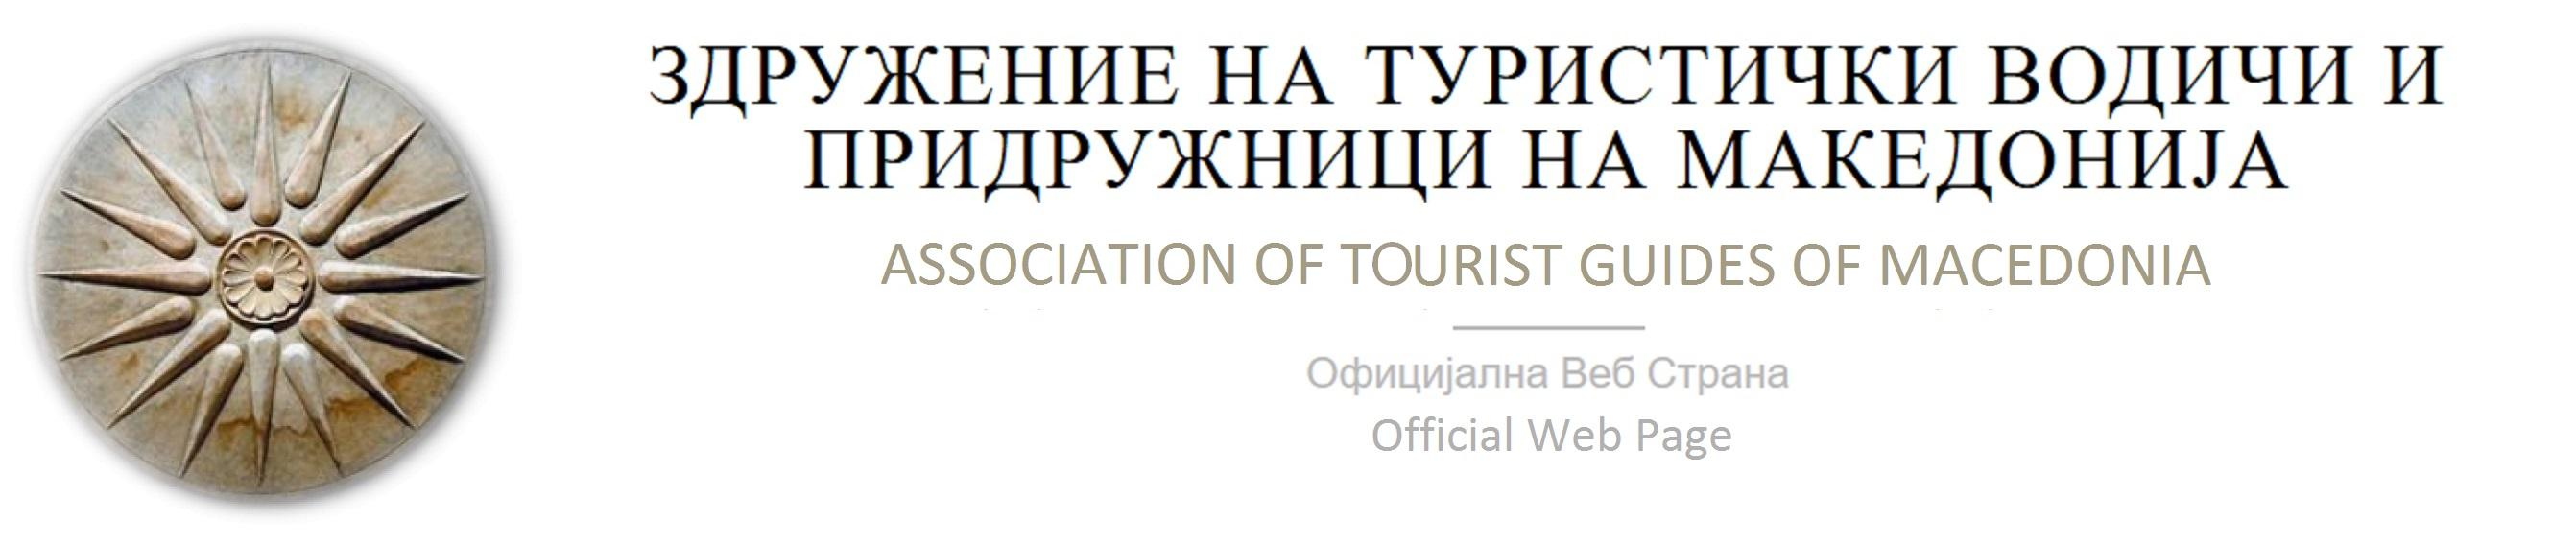 Association of Tourist Guides of Macedonia